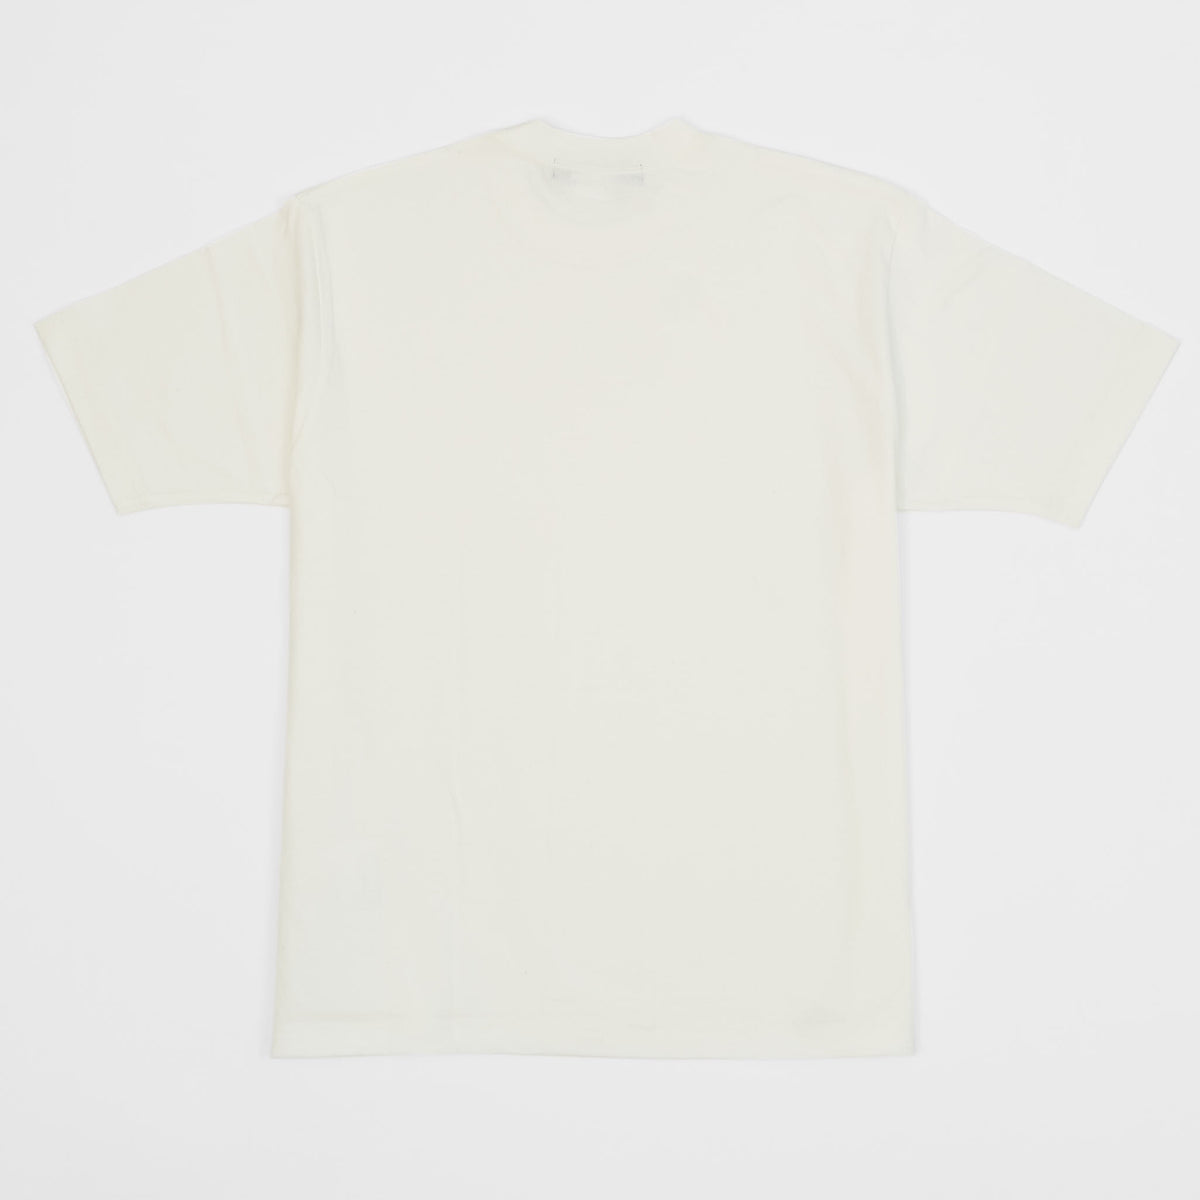 Junya Watanabe Man Crew Neck White Basic T-Shirt